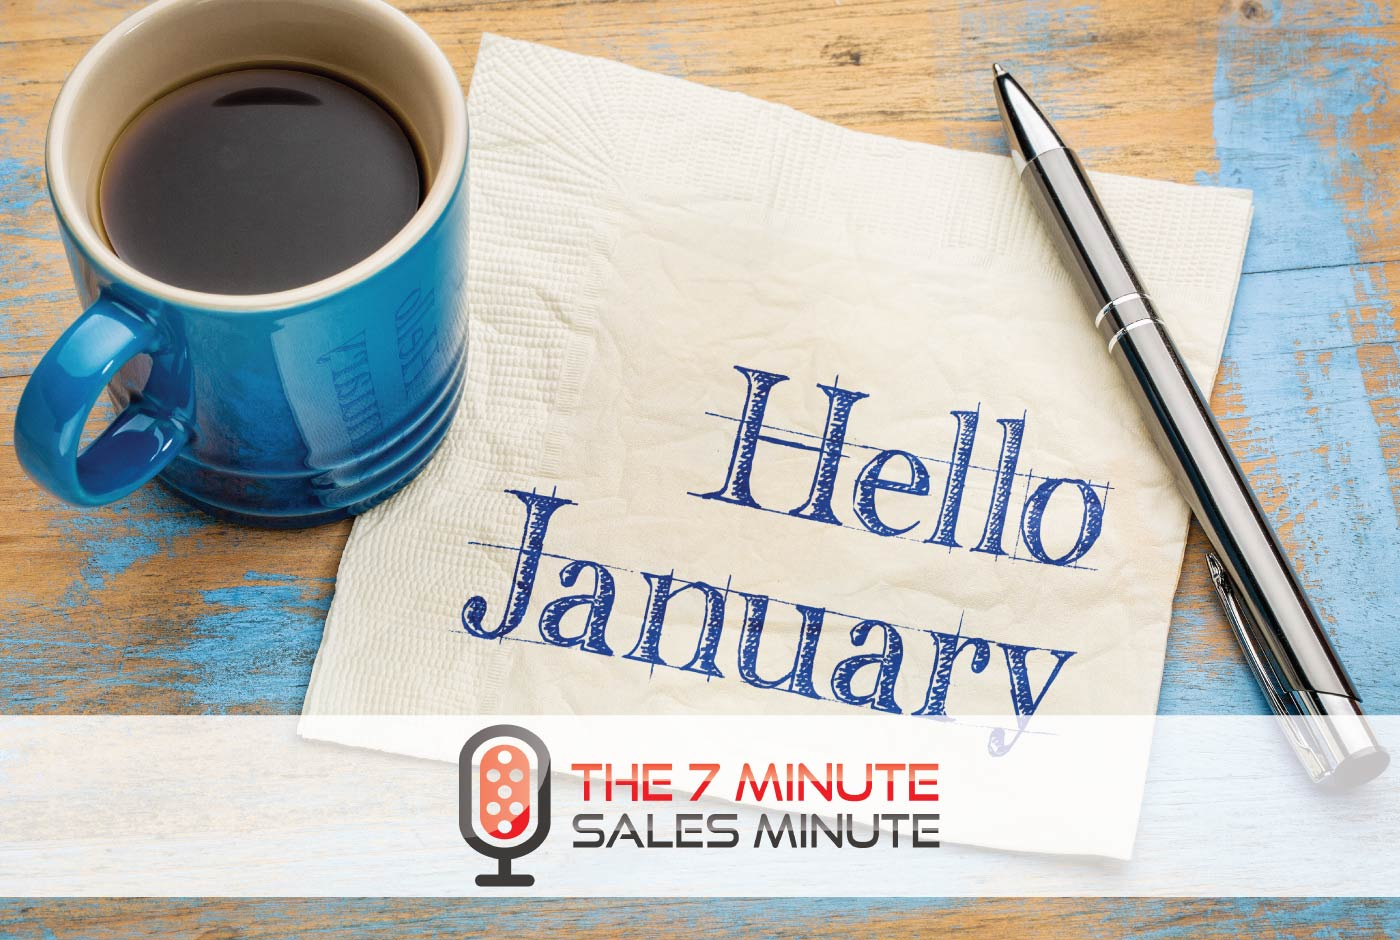 7 Minute Sales Minute Podcast - Season 13 - Episode 2 - Affecting The January Effect